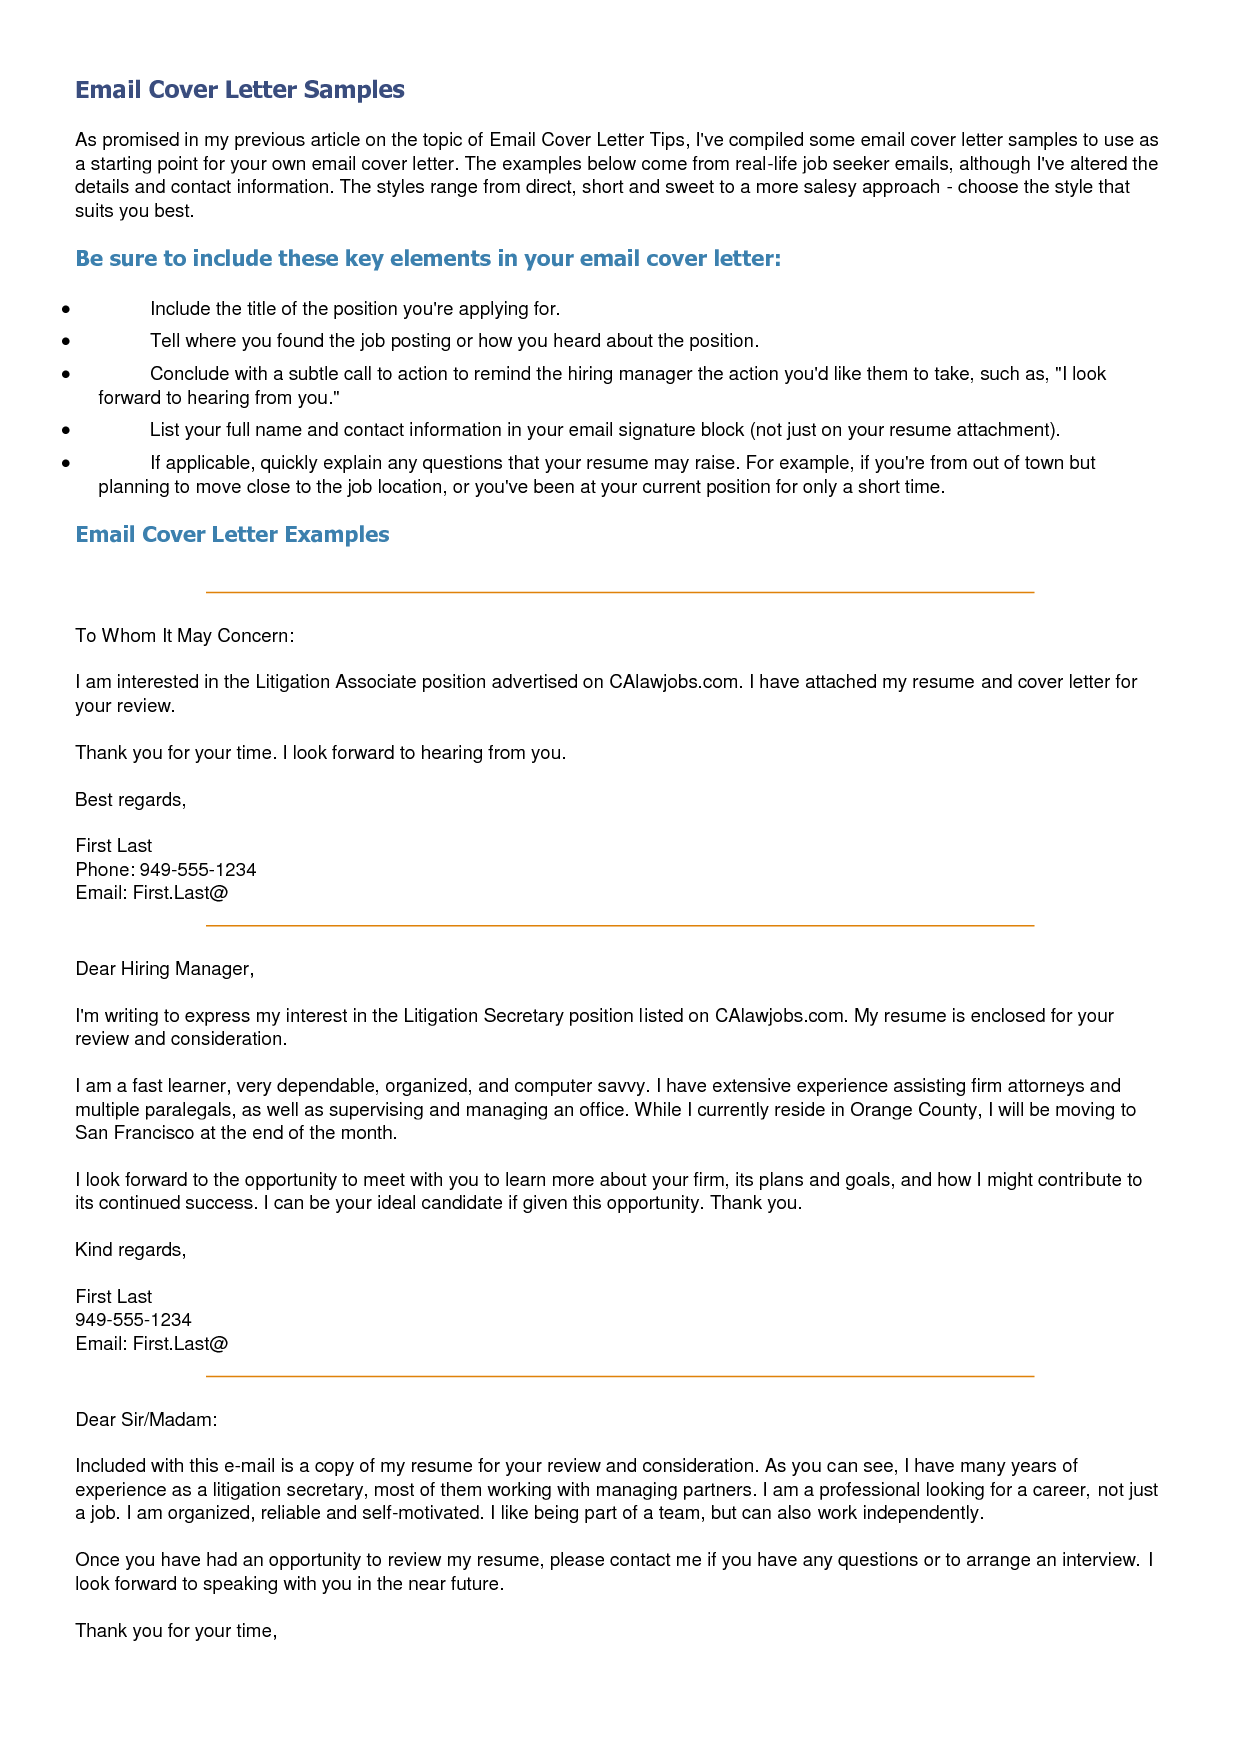 Perfect Email Cover Letter Sample Email Cover Letter Samples Idea Email Cover Letter Format